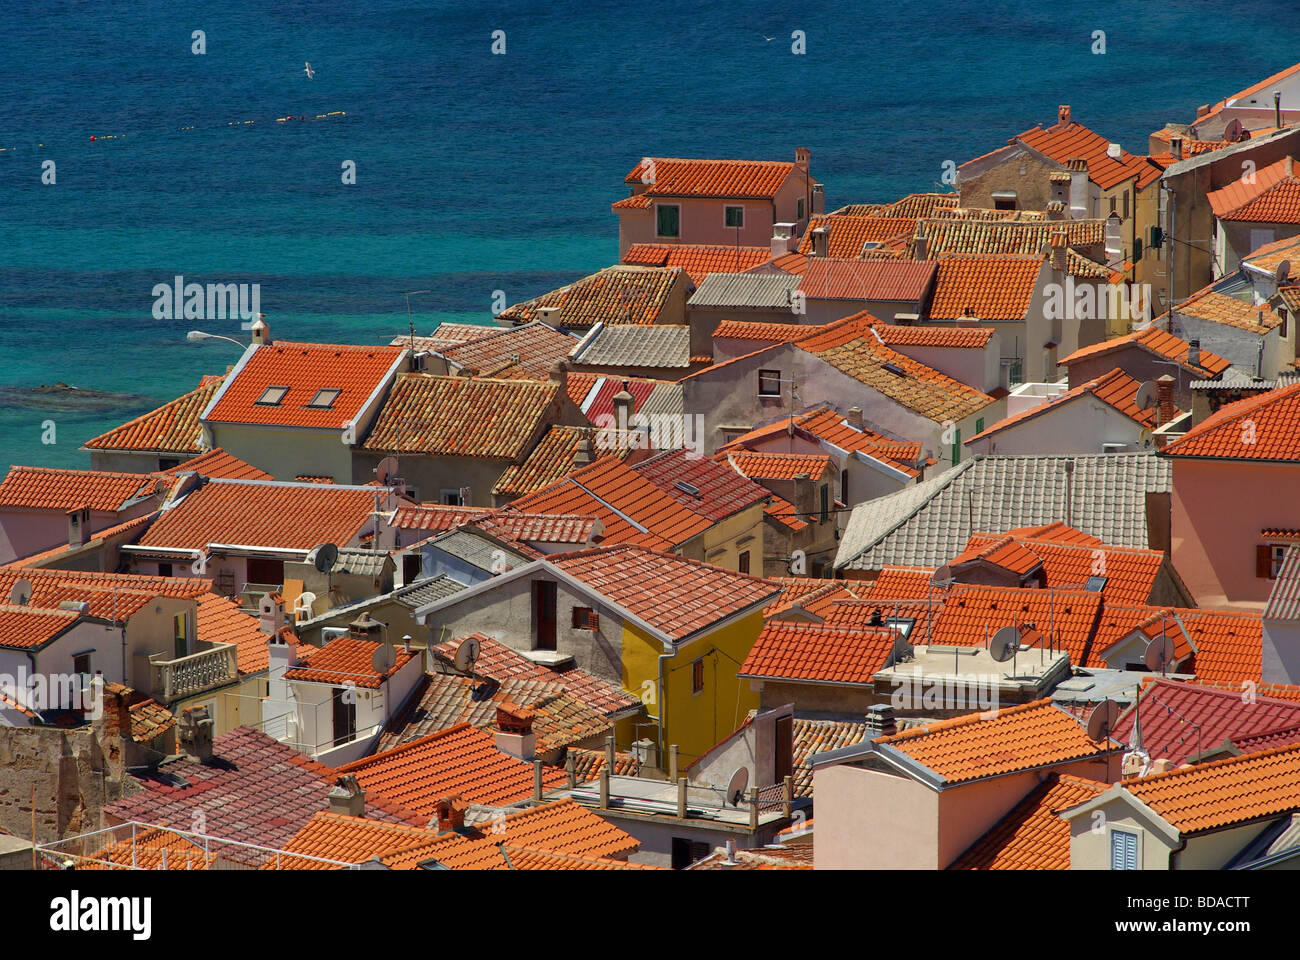 Baska 04 - Stock Image